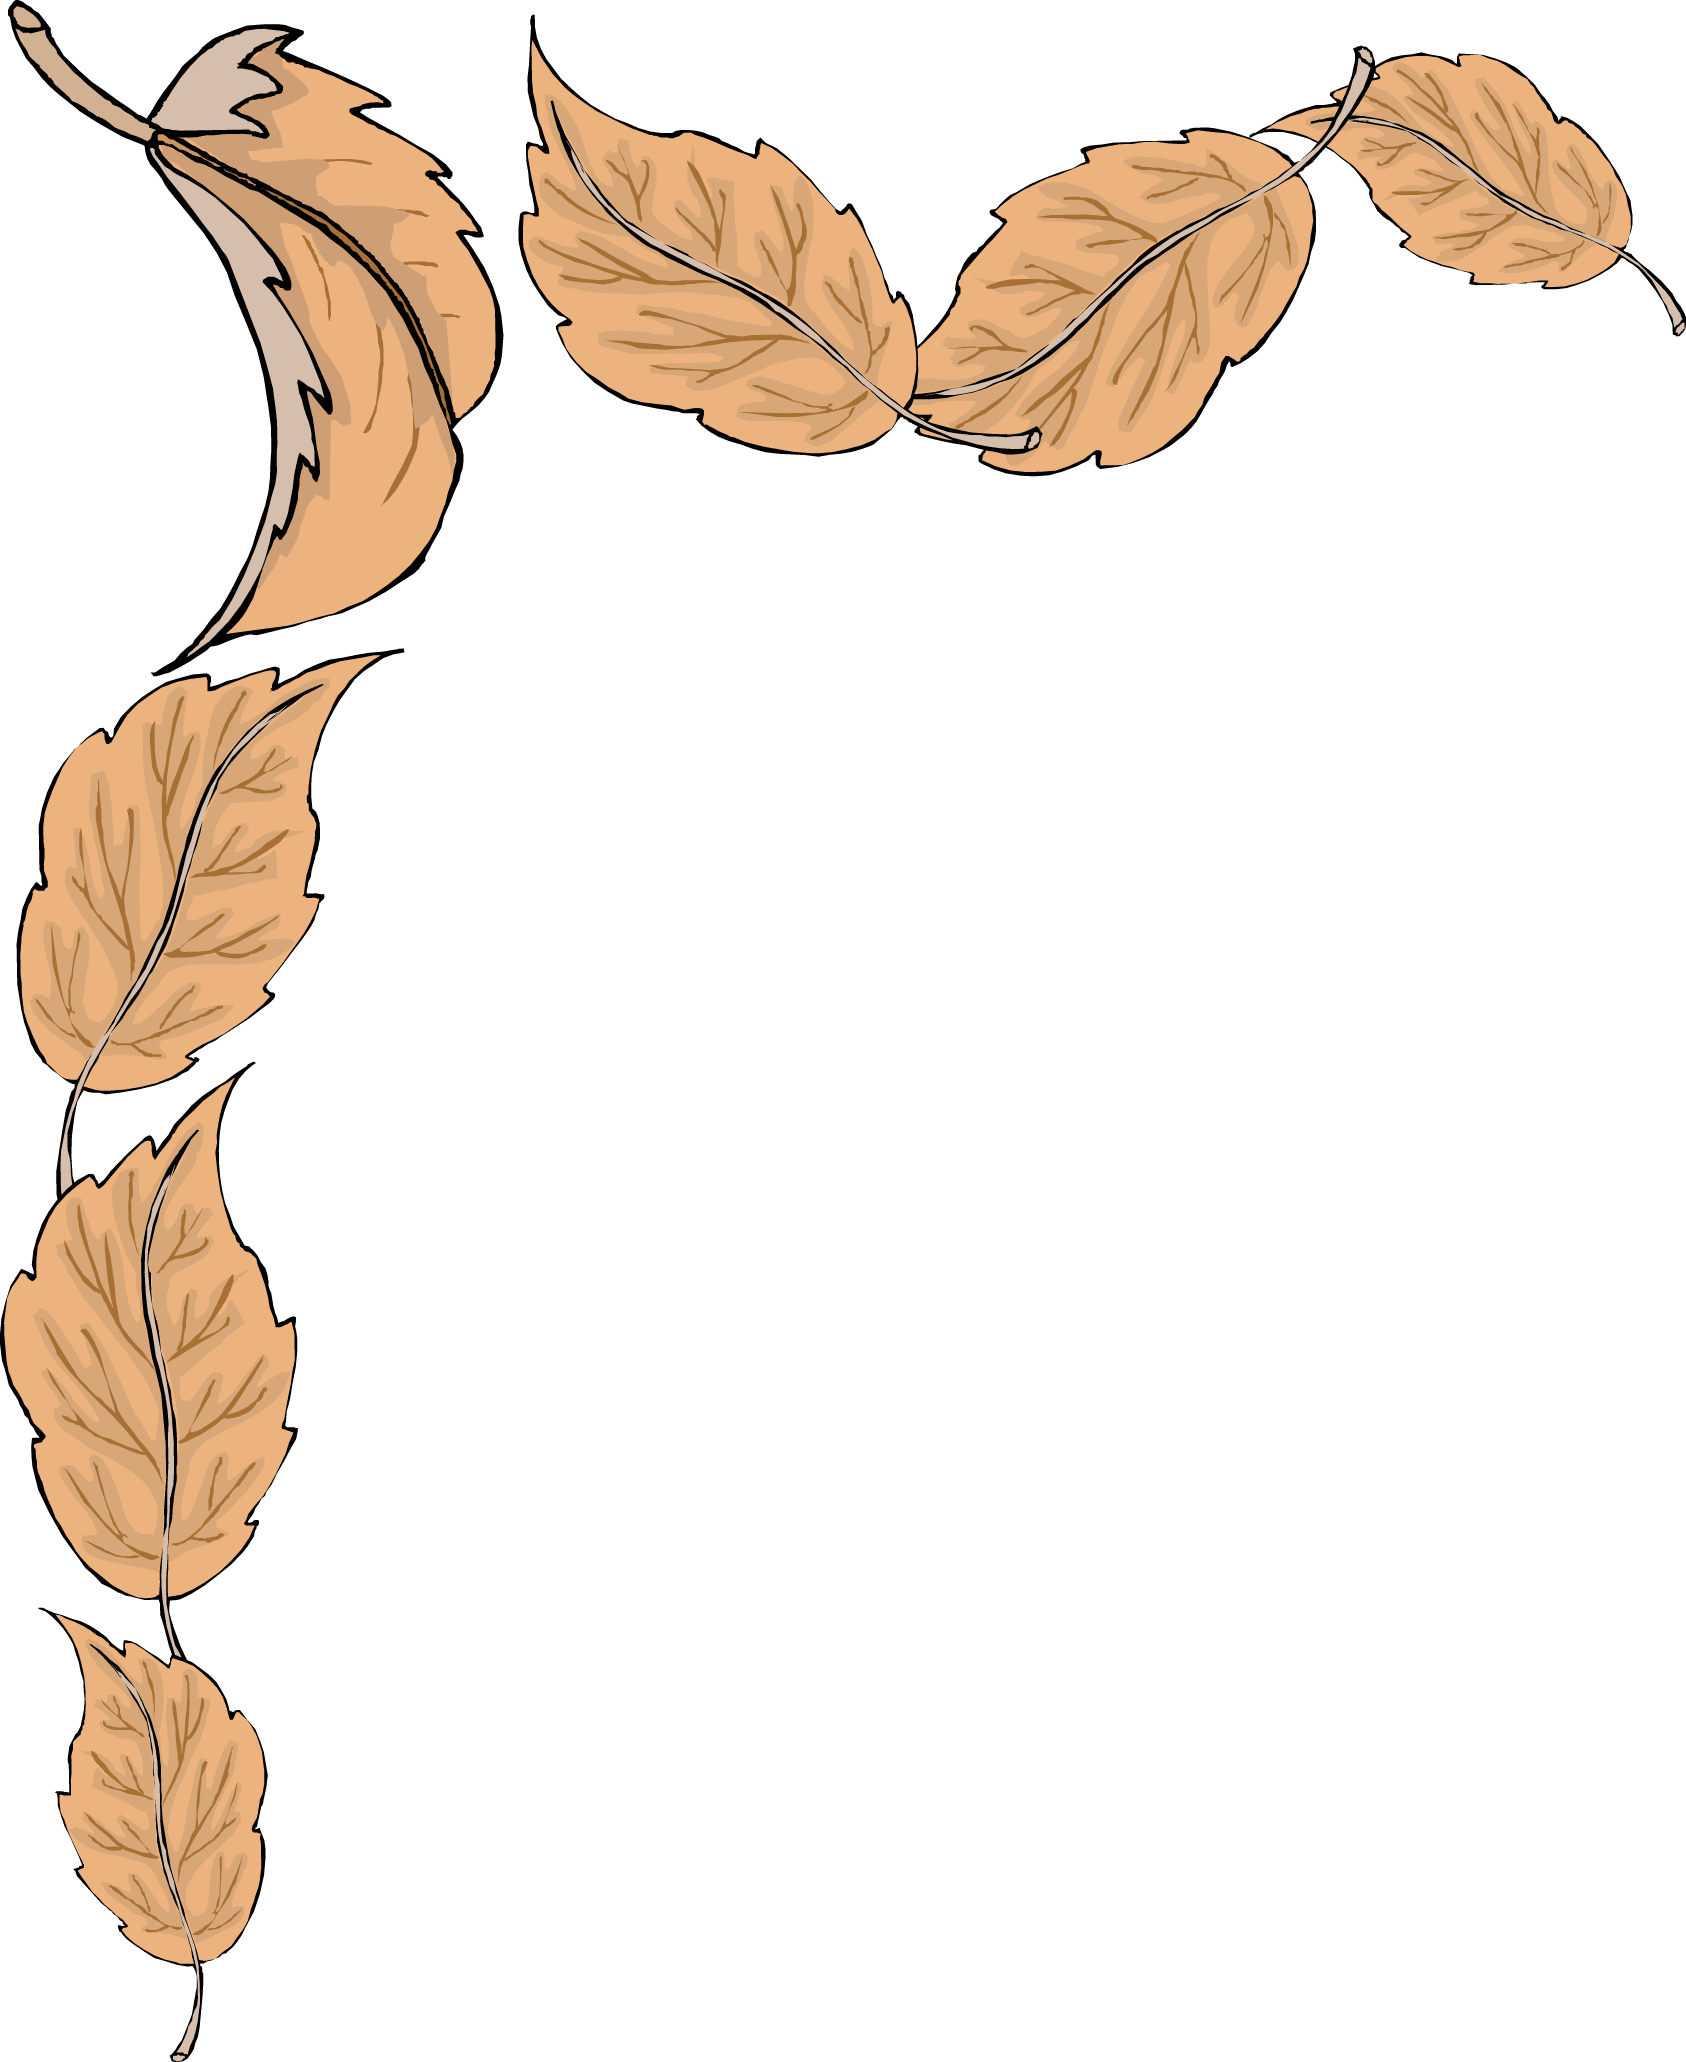 Fall leaves clip art. Bamboo clipart nature border design freeuse download